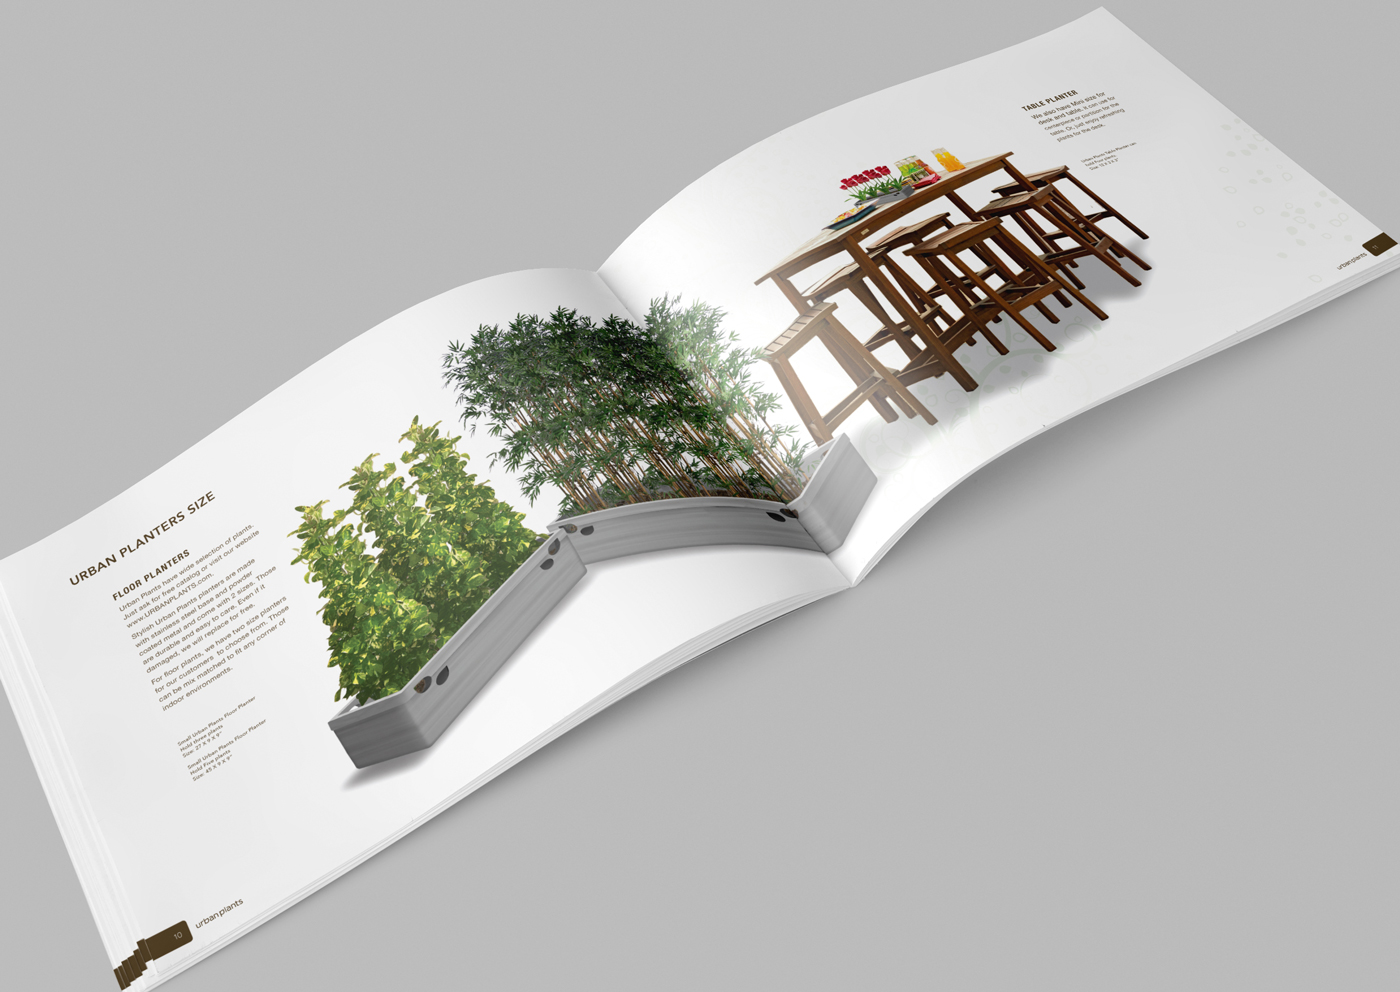 urban plants manual